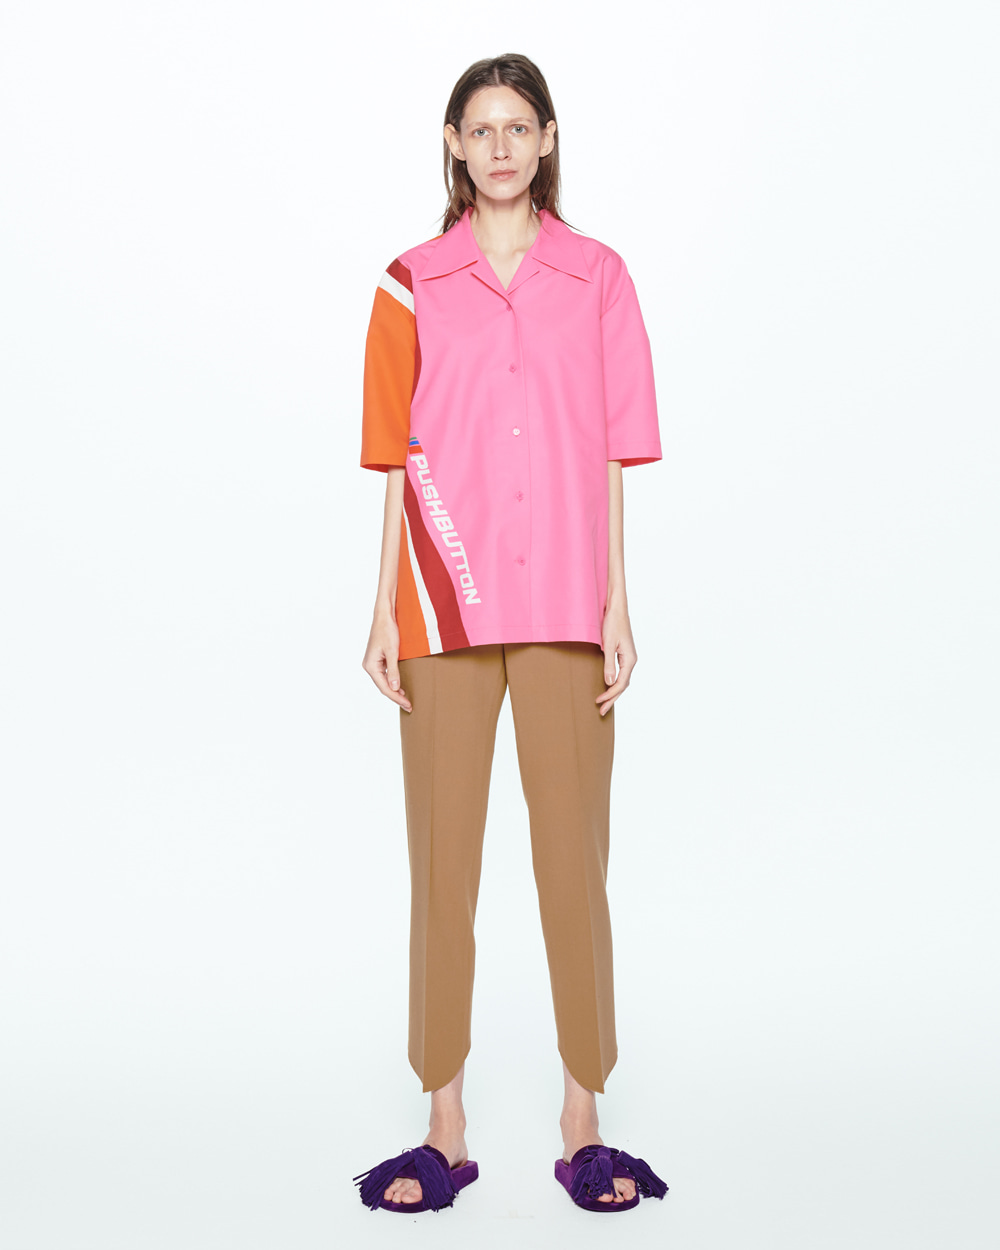 PF20 VIVID WIND SHIRT